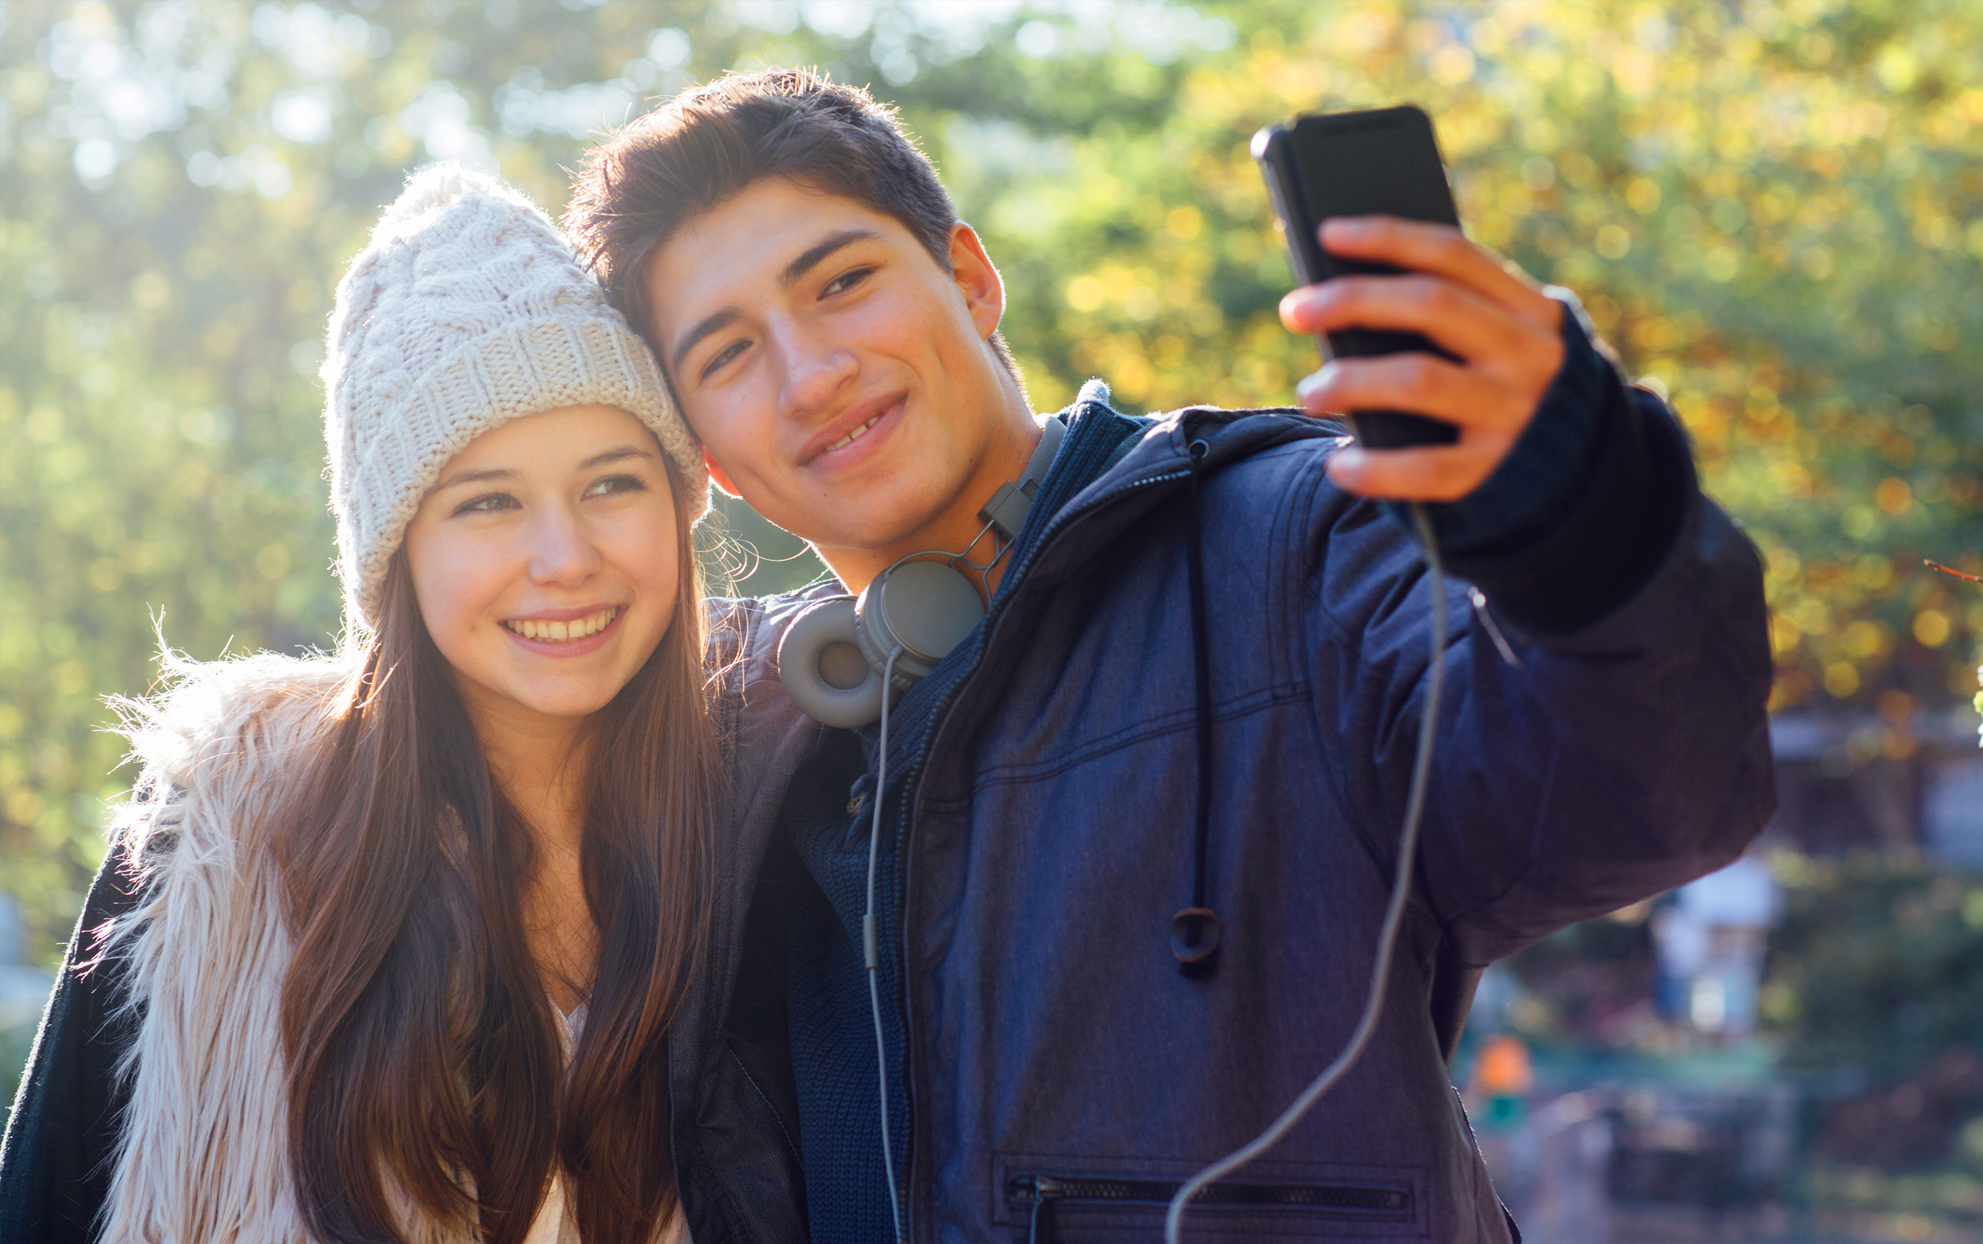 Male and female teen taking selfie outside